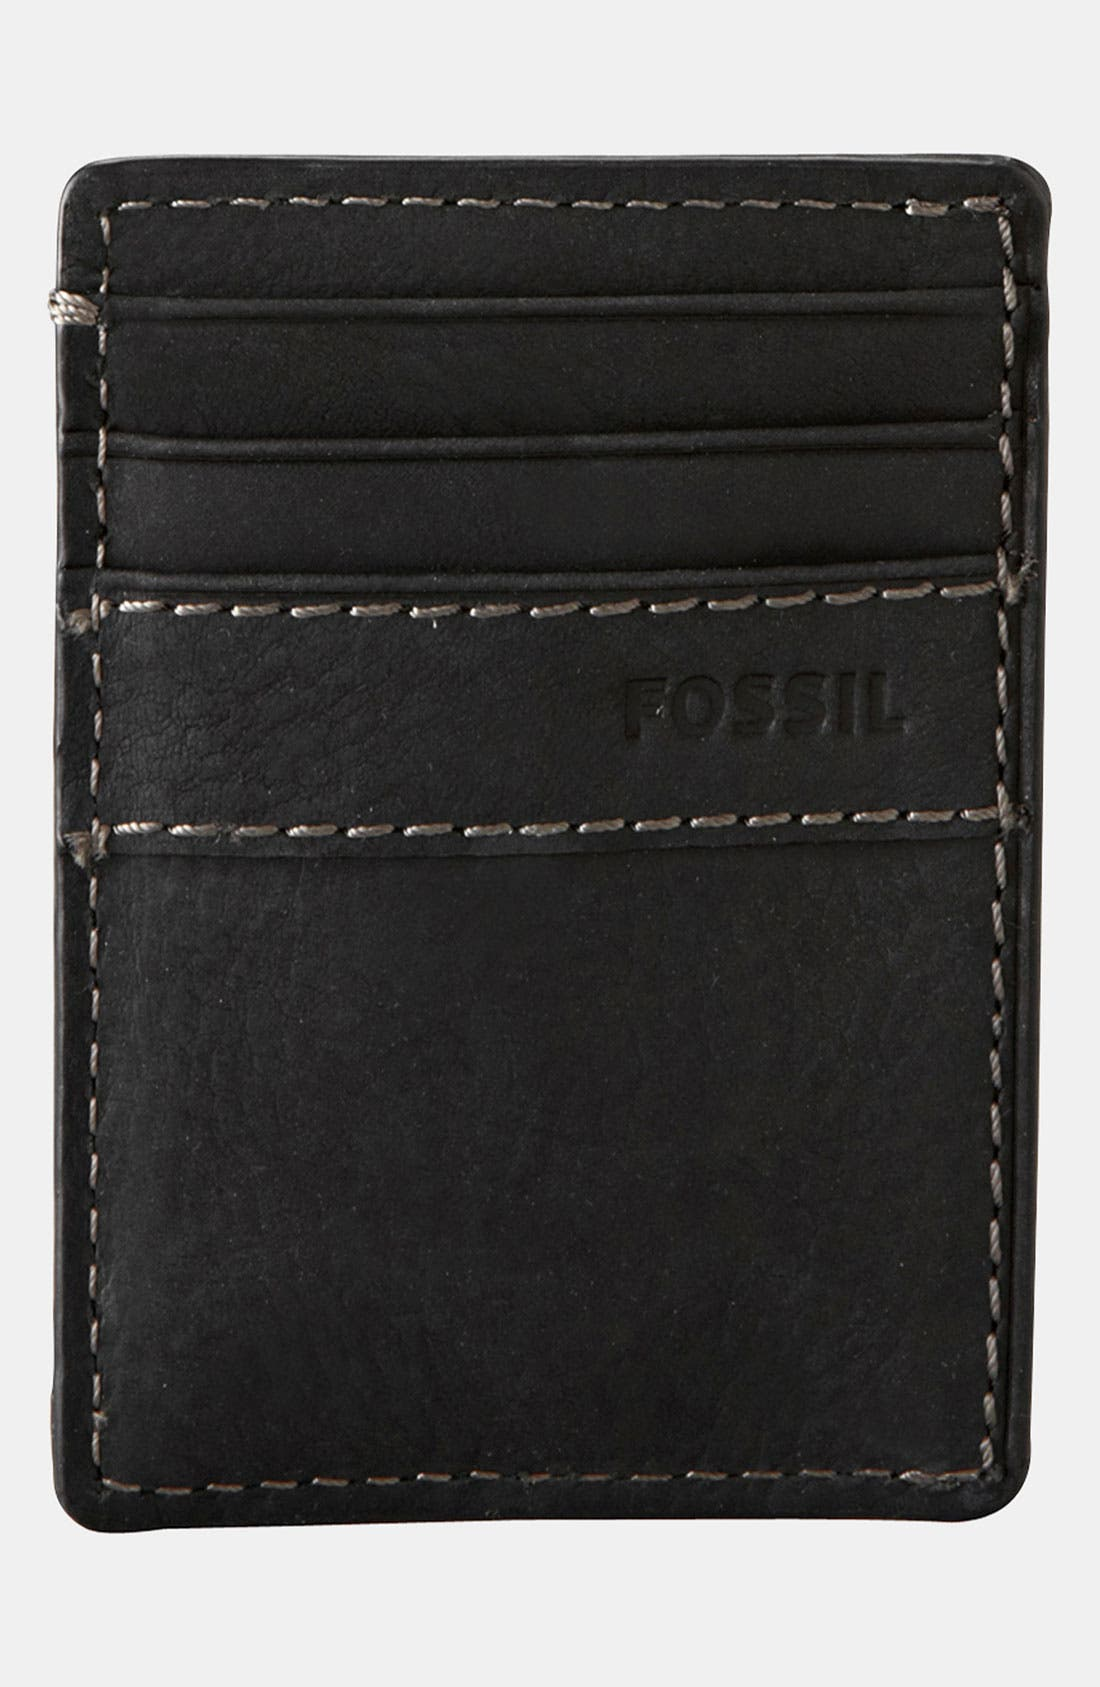 Alternate Image 1 Selected - Fossil Money Clip Card Case